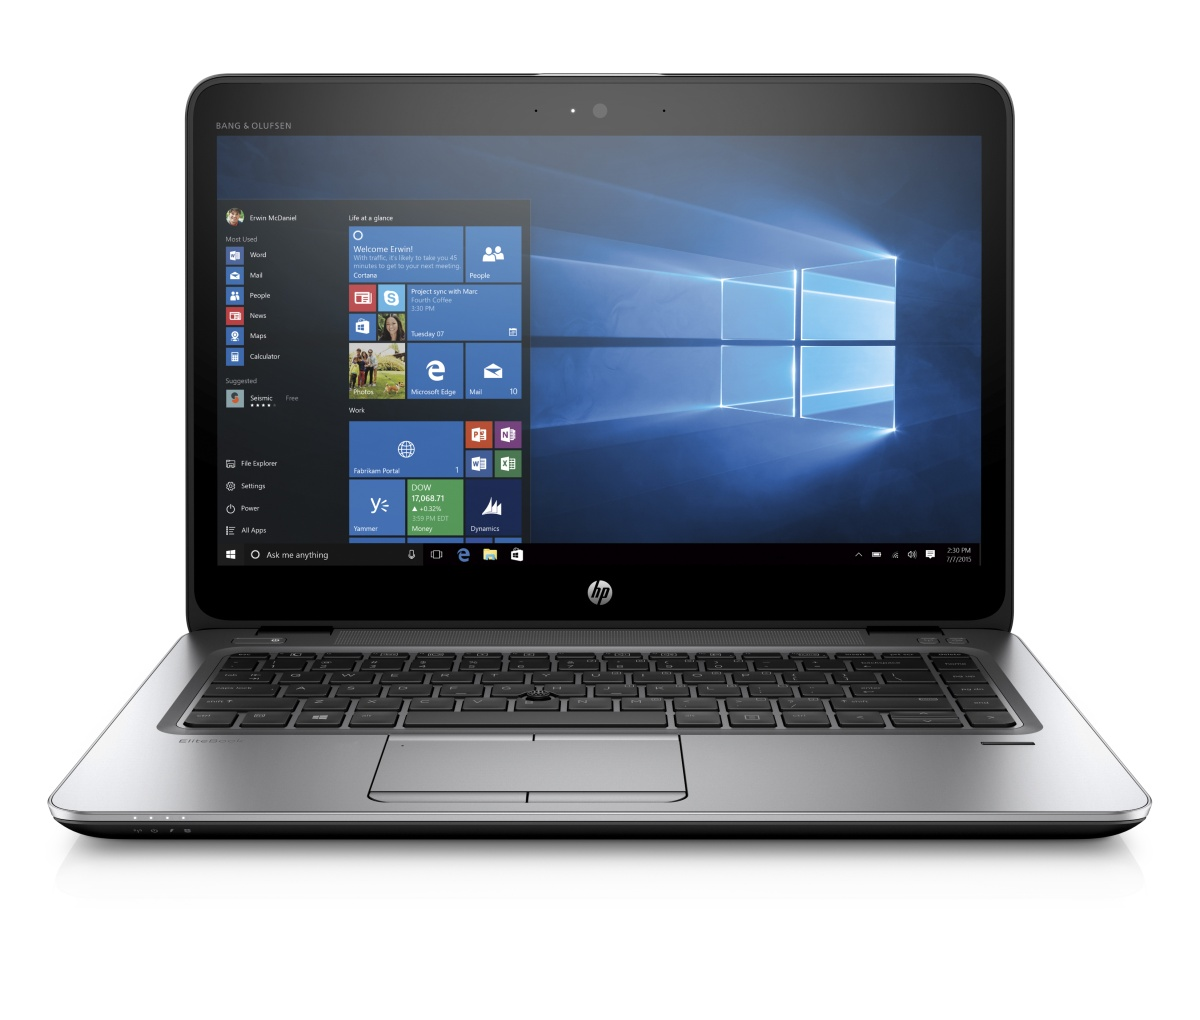 HP EliteBook 840 G3 i7-6500U 14 FHD CAM, 8GB, 256GB SSD M.2, ac, BT, FpR, backl. keyb, 3C LL batt, Win10Pro downgraded